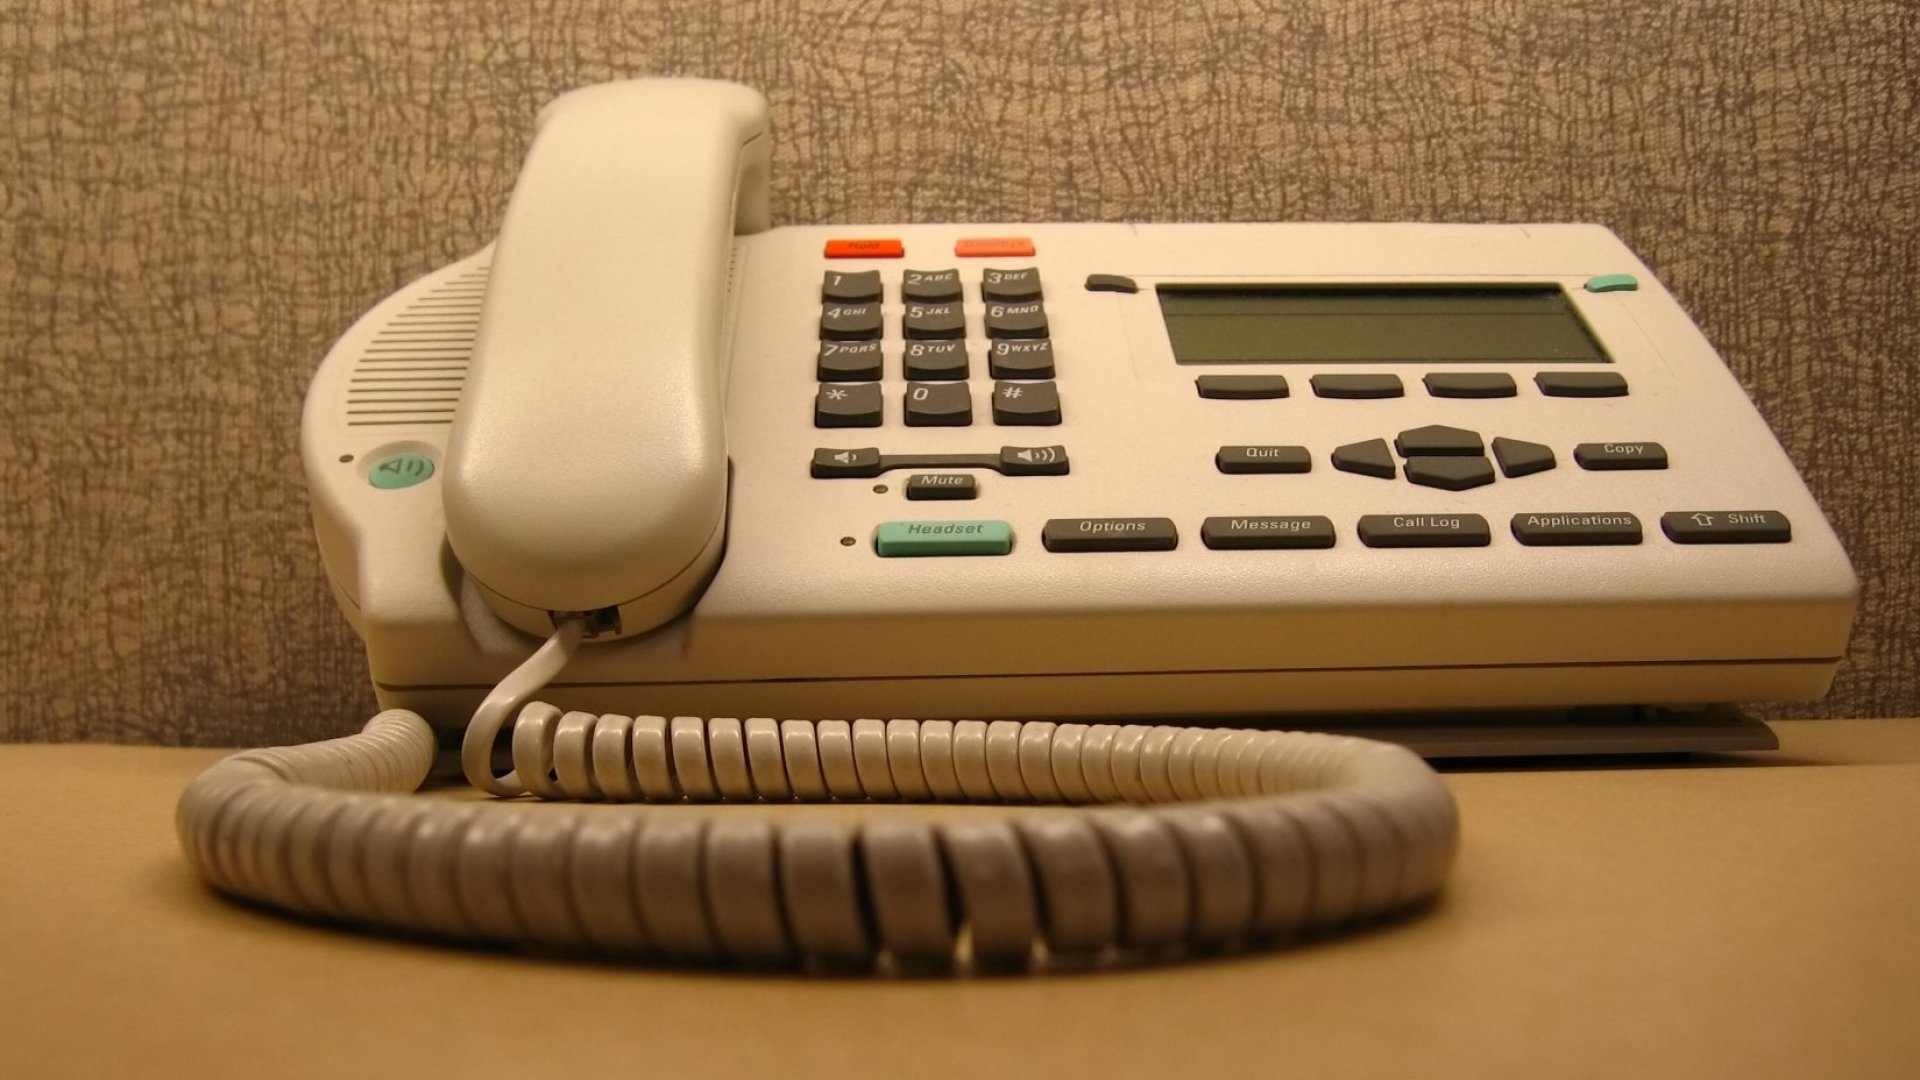 Voicemail Is Now Officially Dead. Here's What Killed It